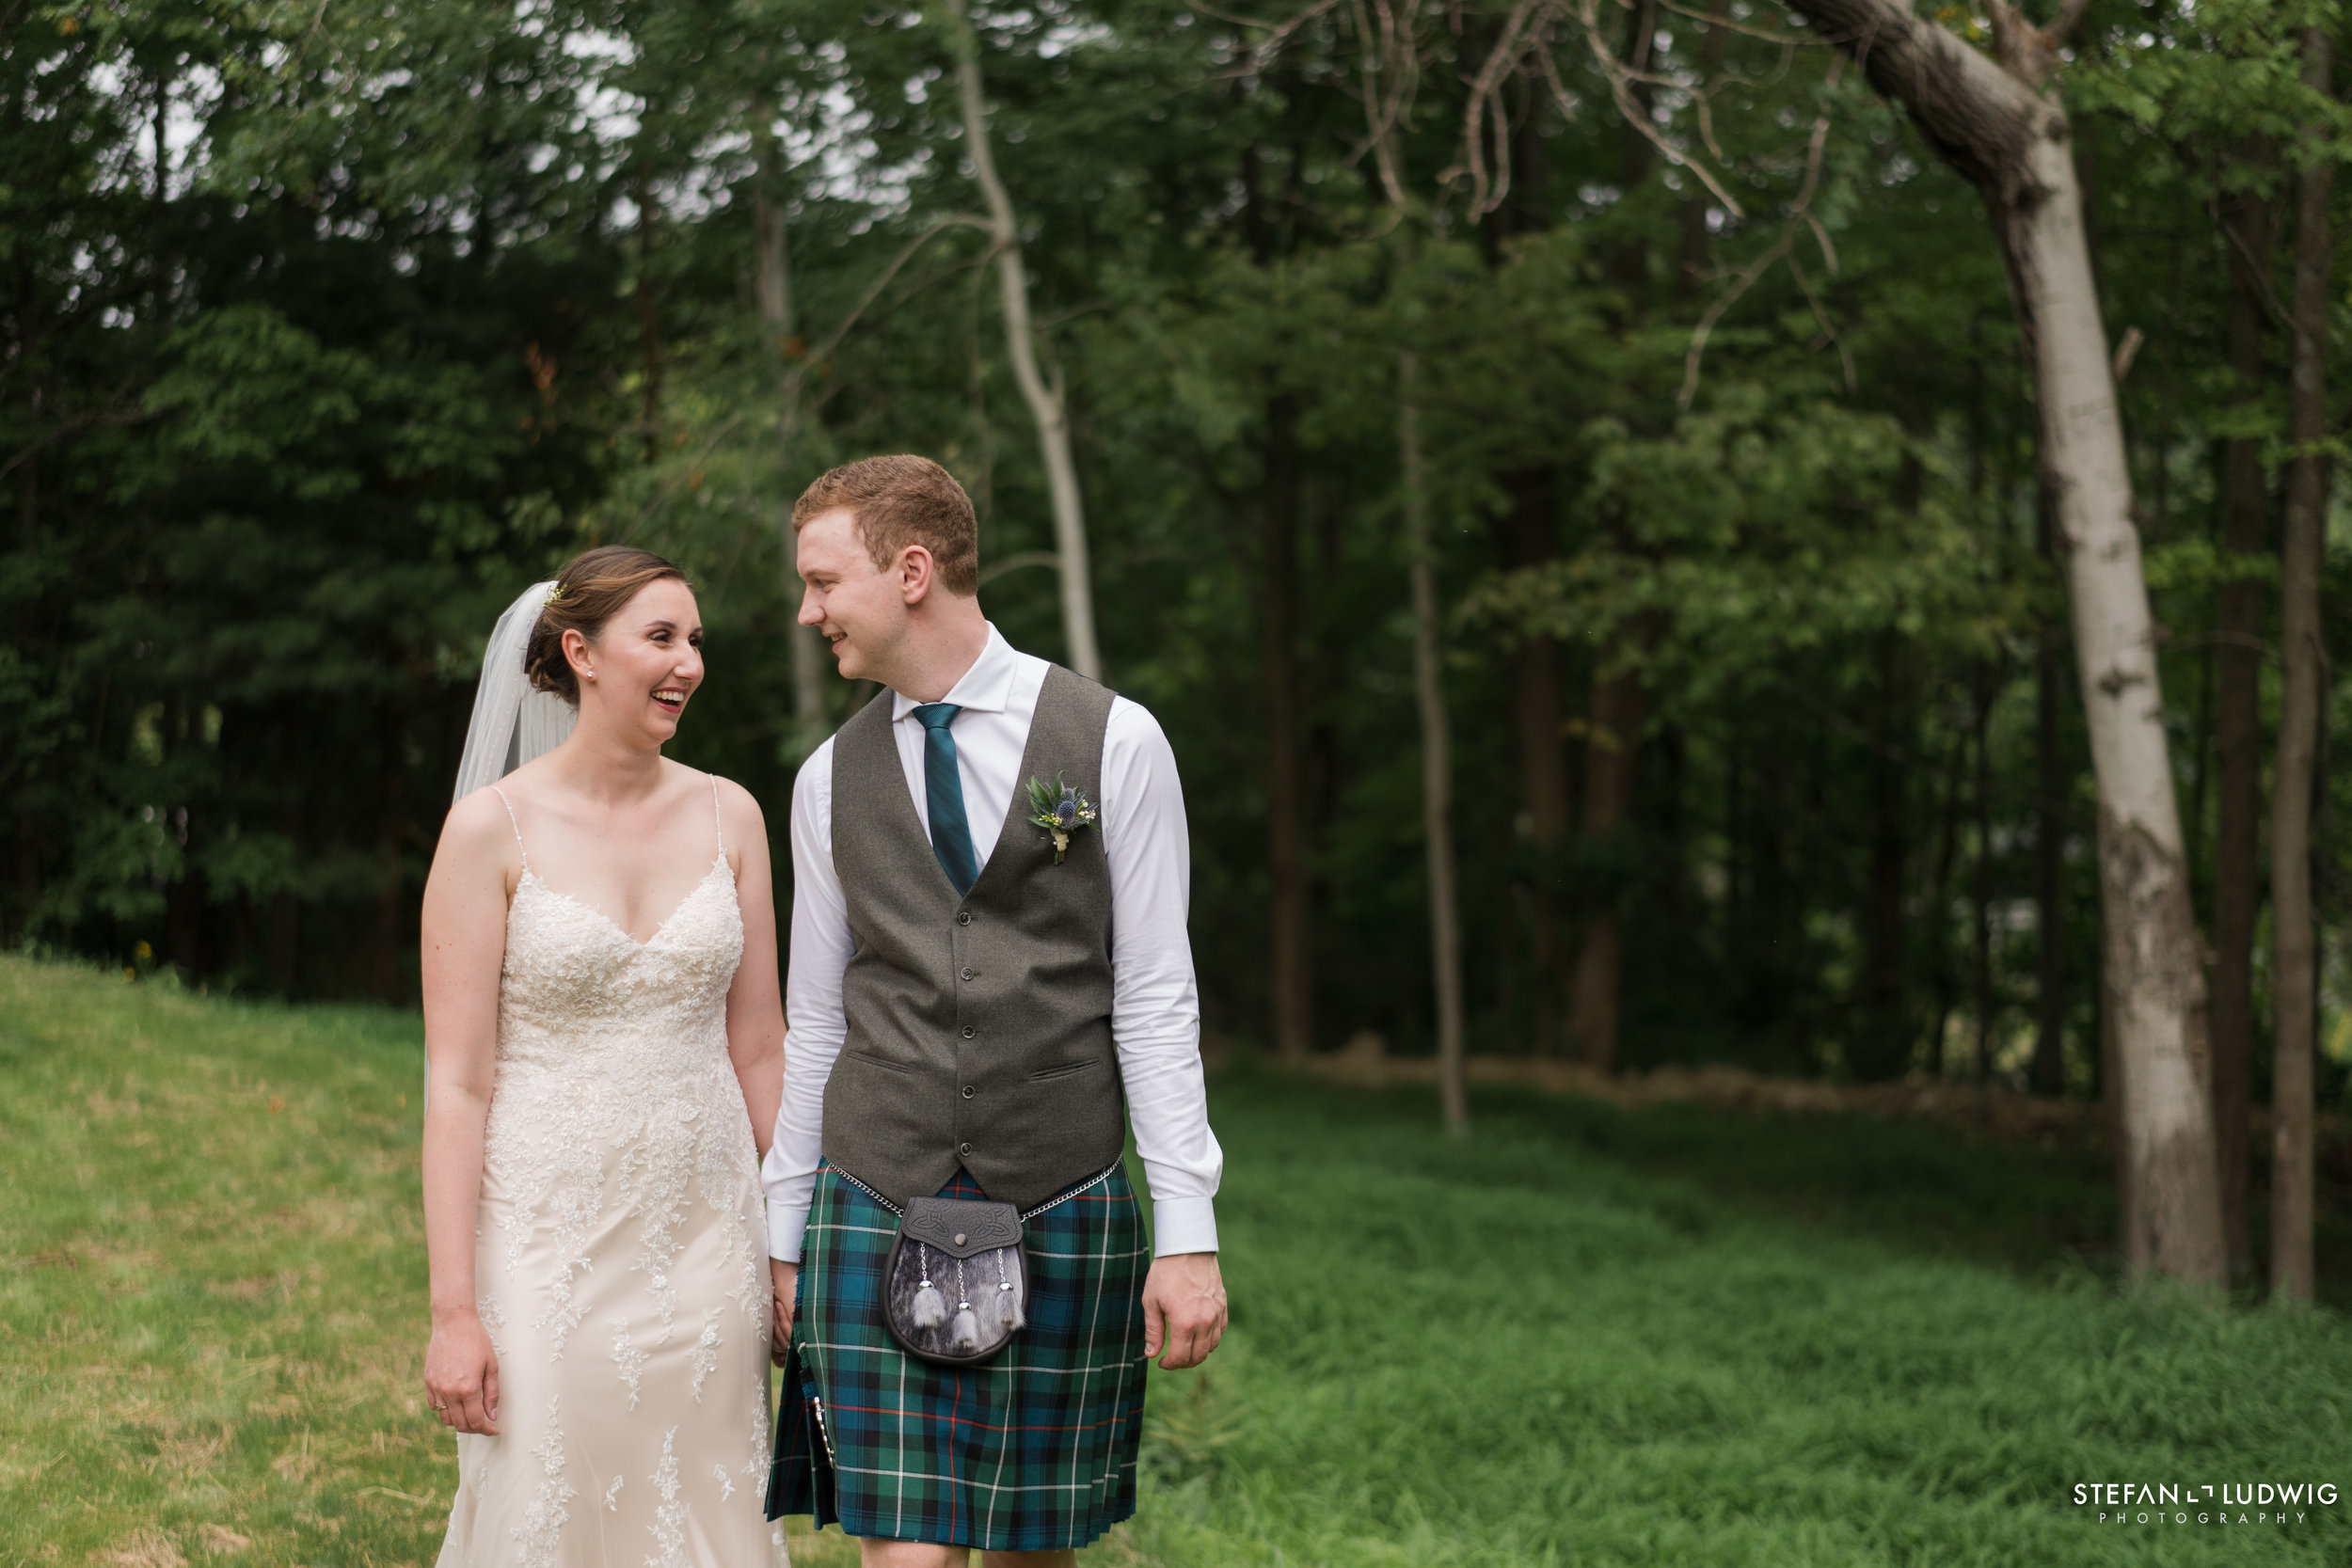 Jess and JR Wedding Photography at Holimont in Ellicottville NY by Stefan Ludwig Photography-27.jpg